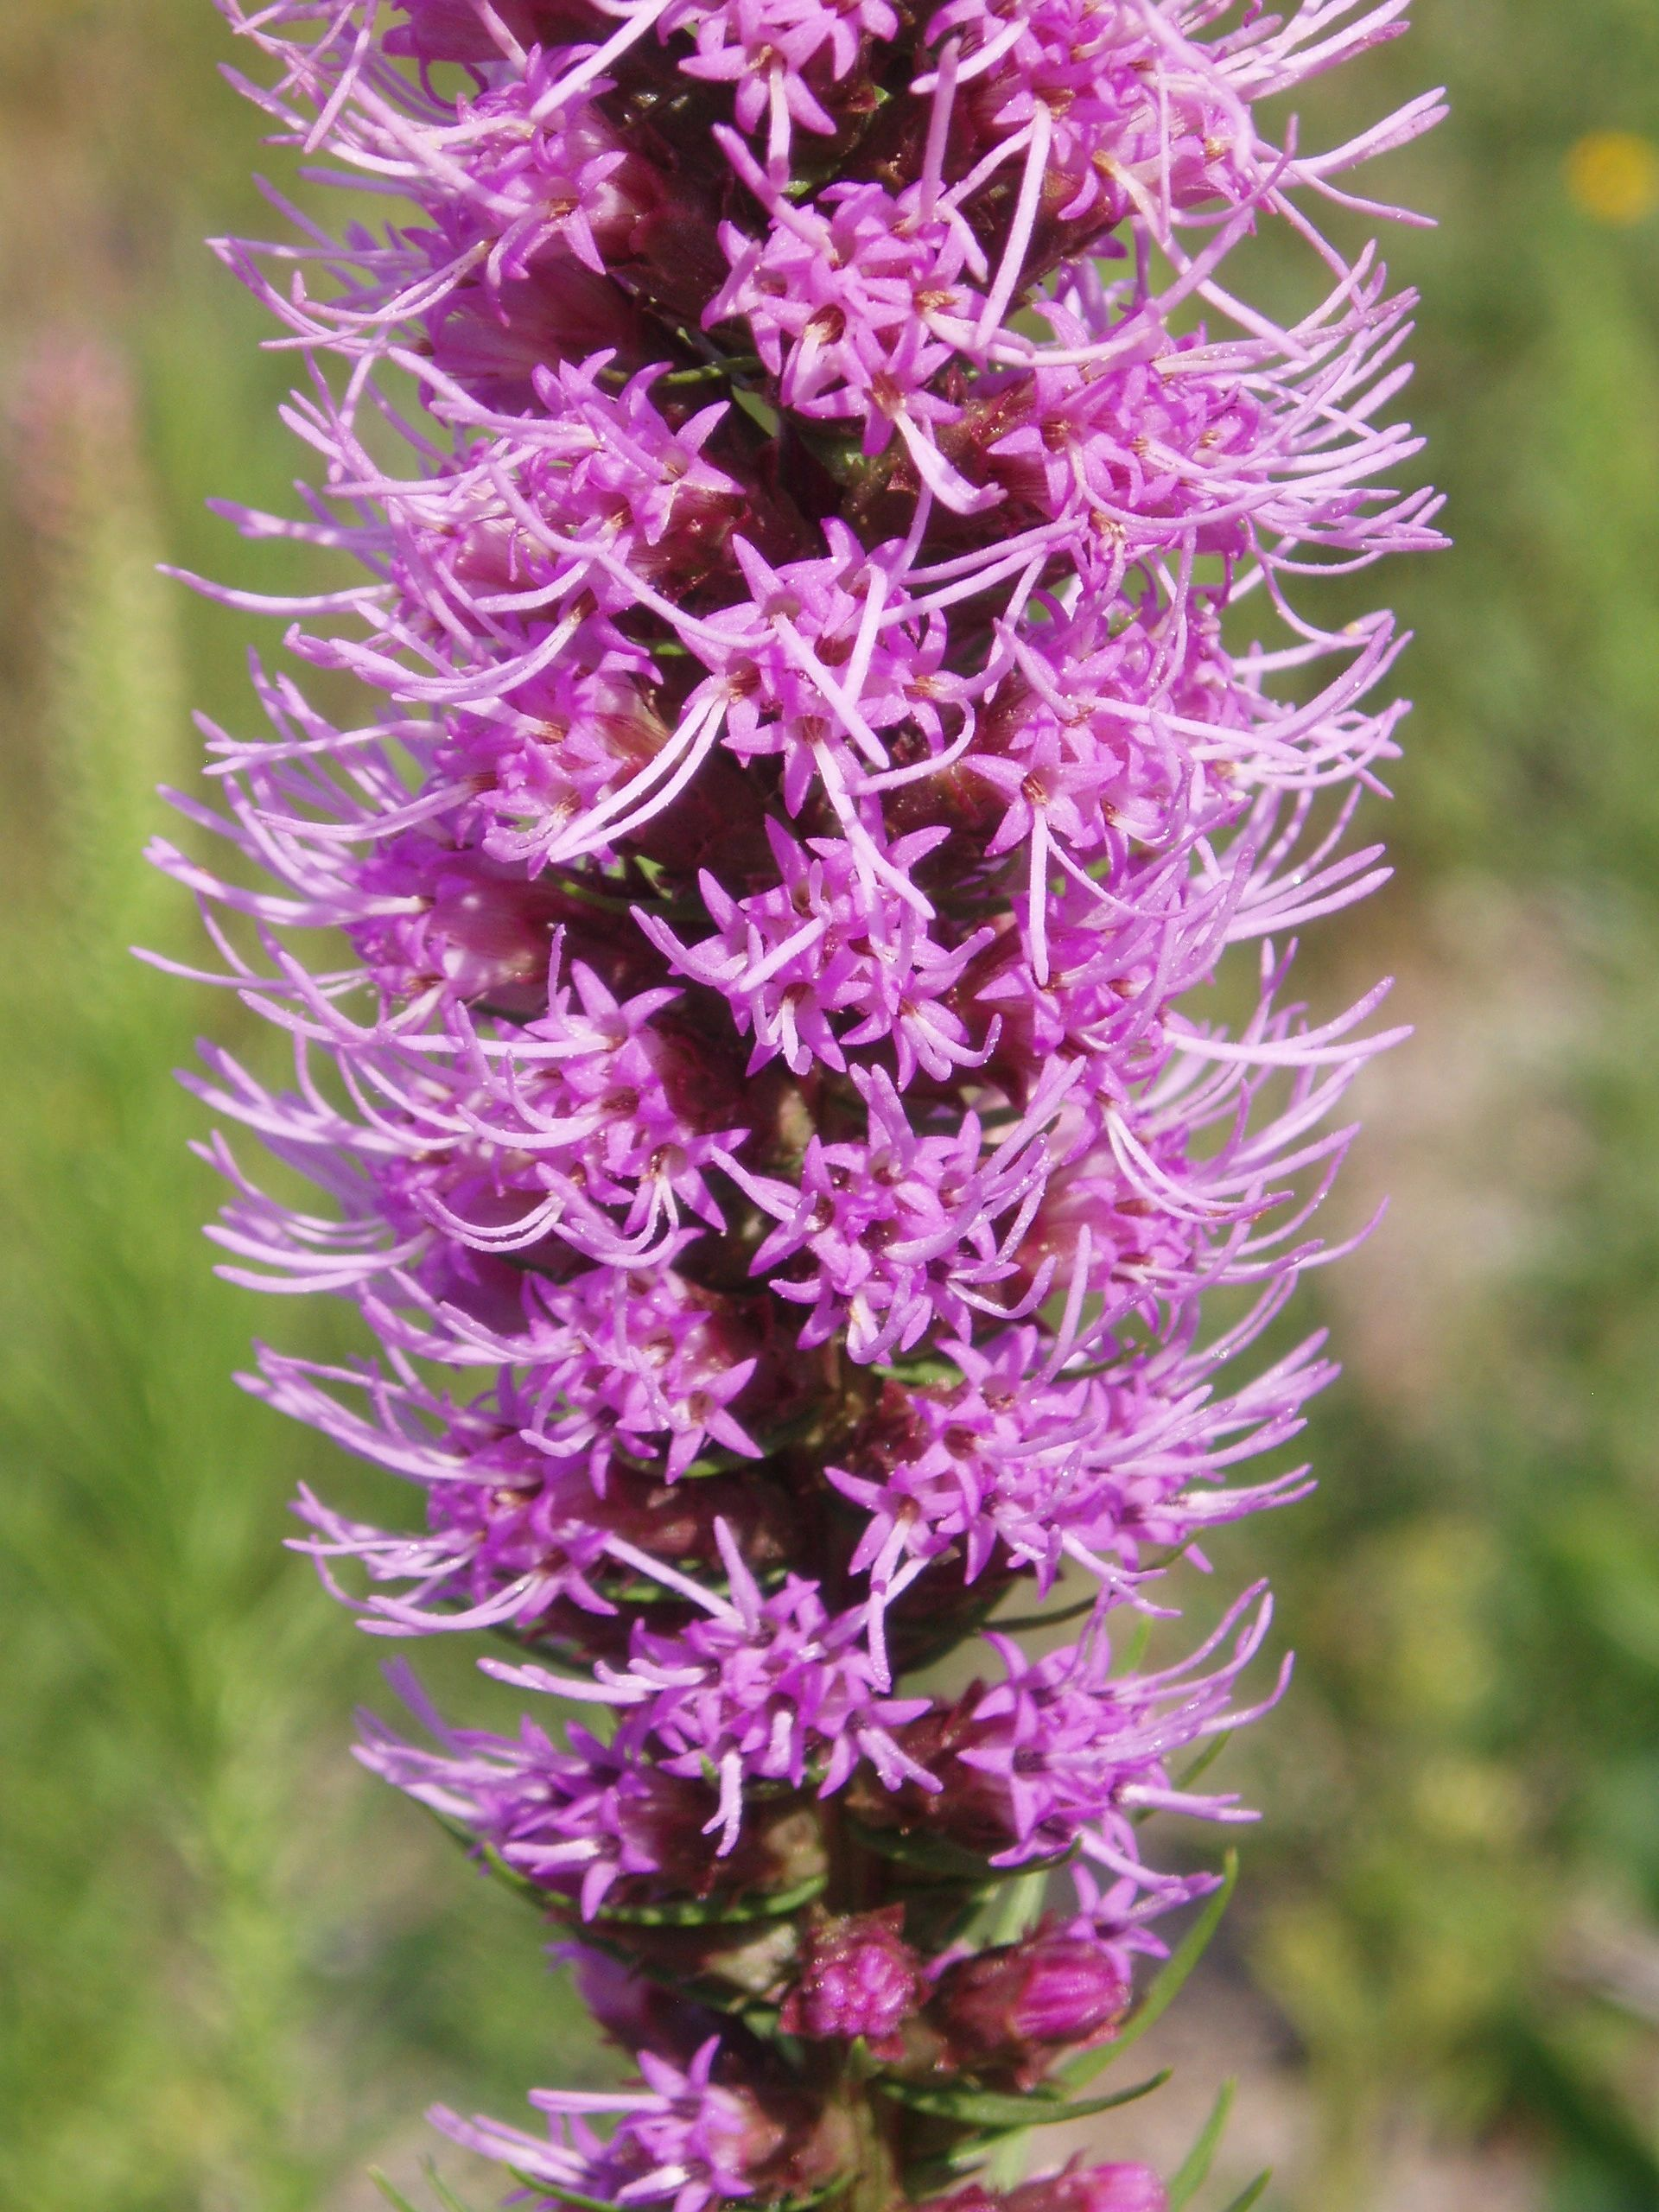 "{""blocks"":[{""key"":""cjfcg"",""text"":""Liatris spicata Dense Spiked Blazing Star Gayfeather -  potted plants email john@easywildflowers.com"",""type"":""unstyled"",""depth"":0,""inlineStyleRanges"":[],""entityRanges"":[],""data"":{}}],""entityMap"":{}}"